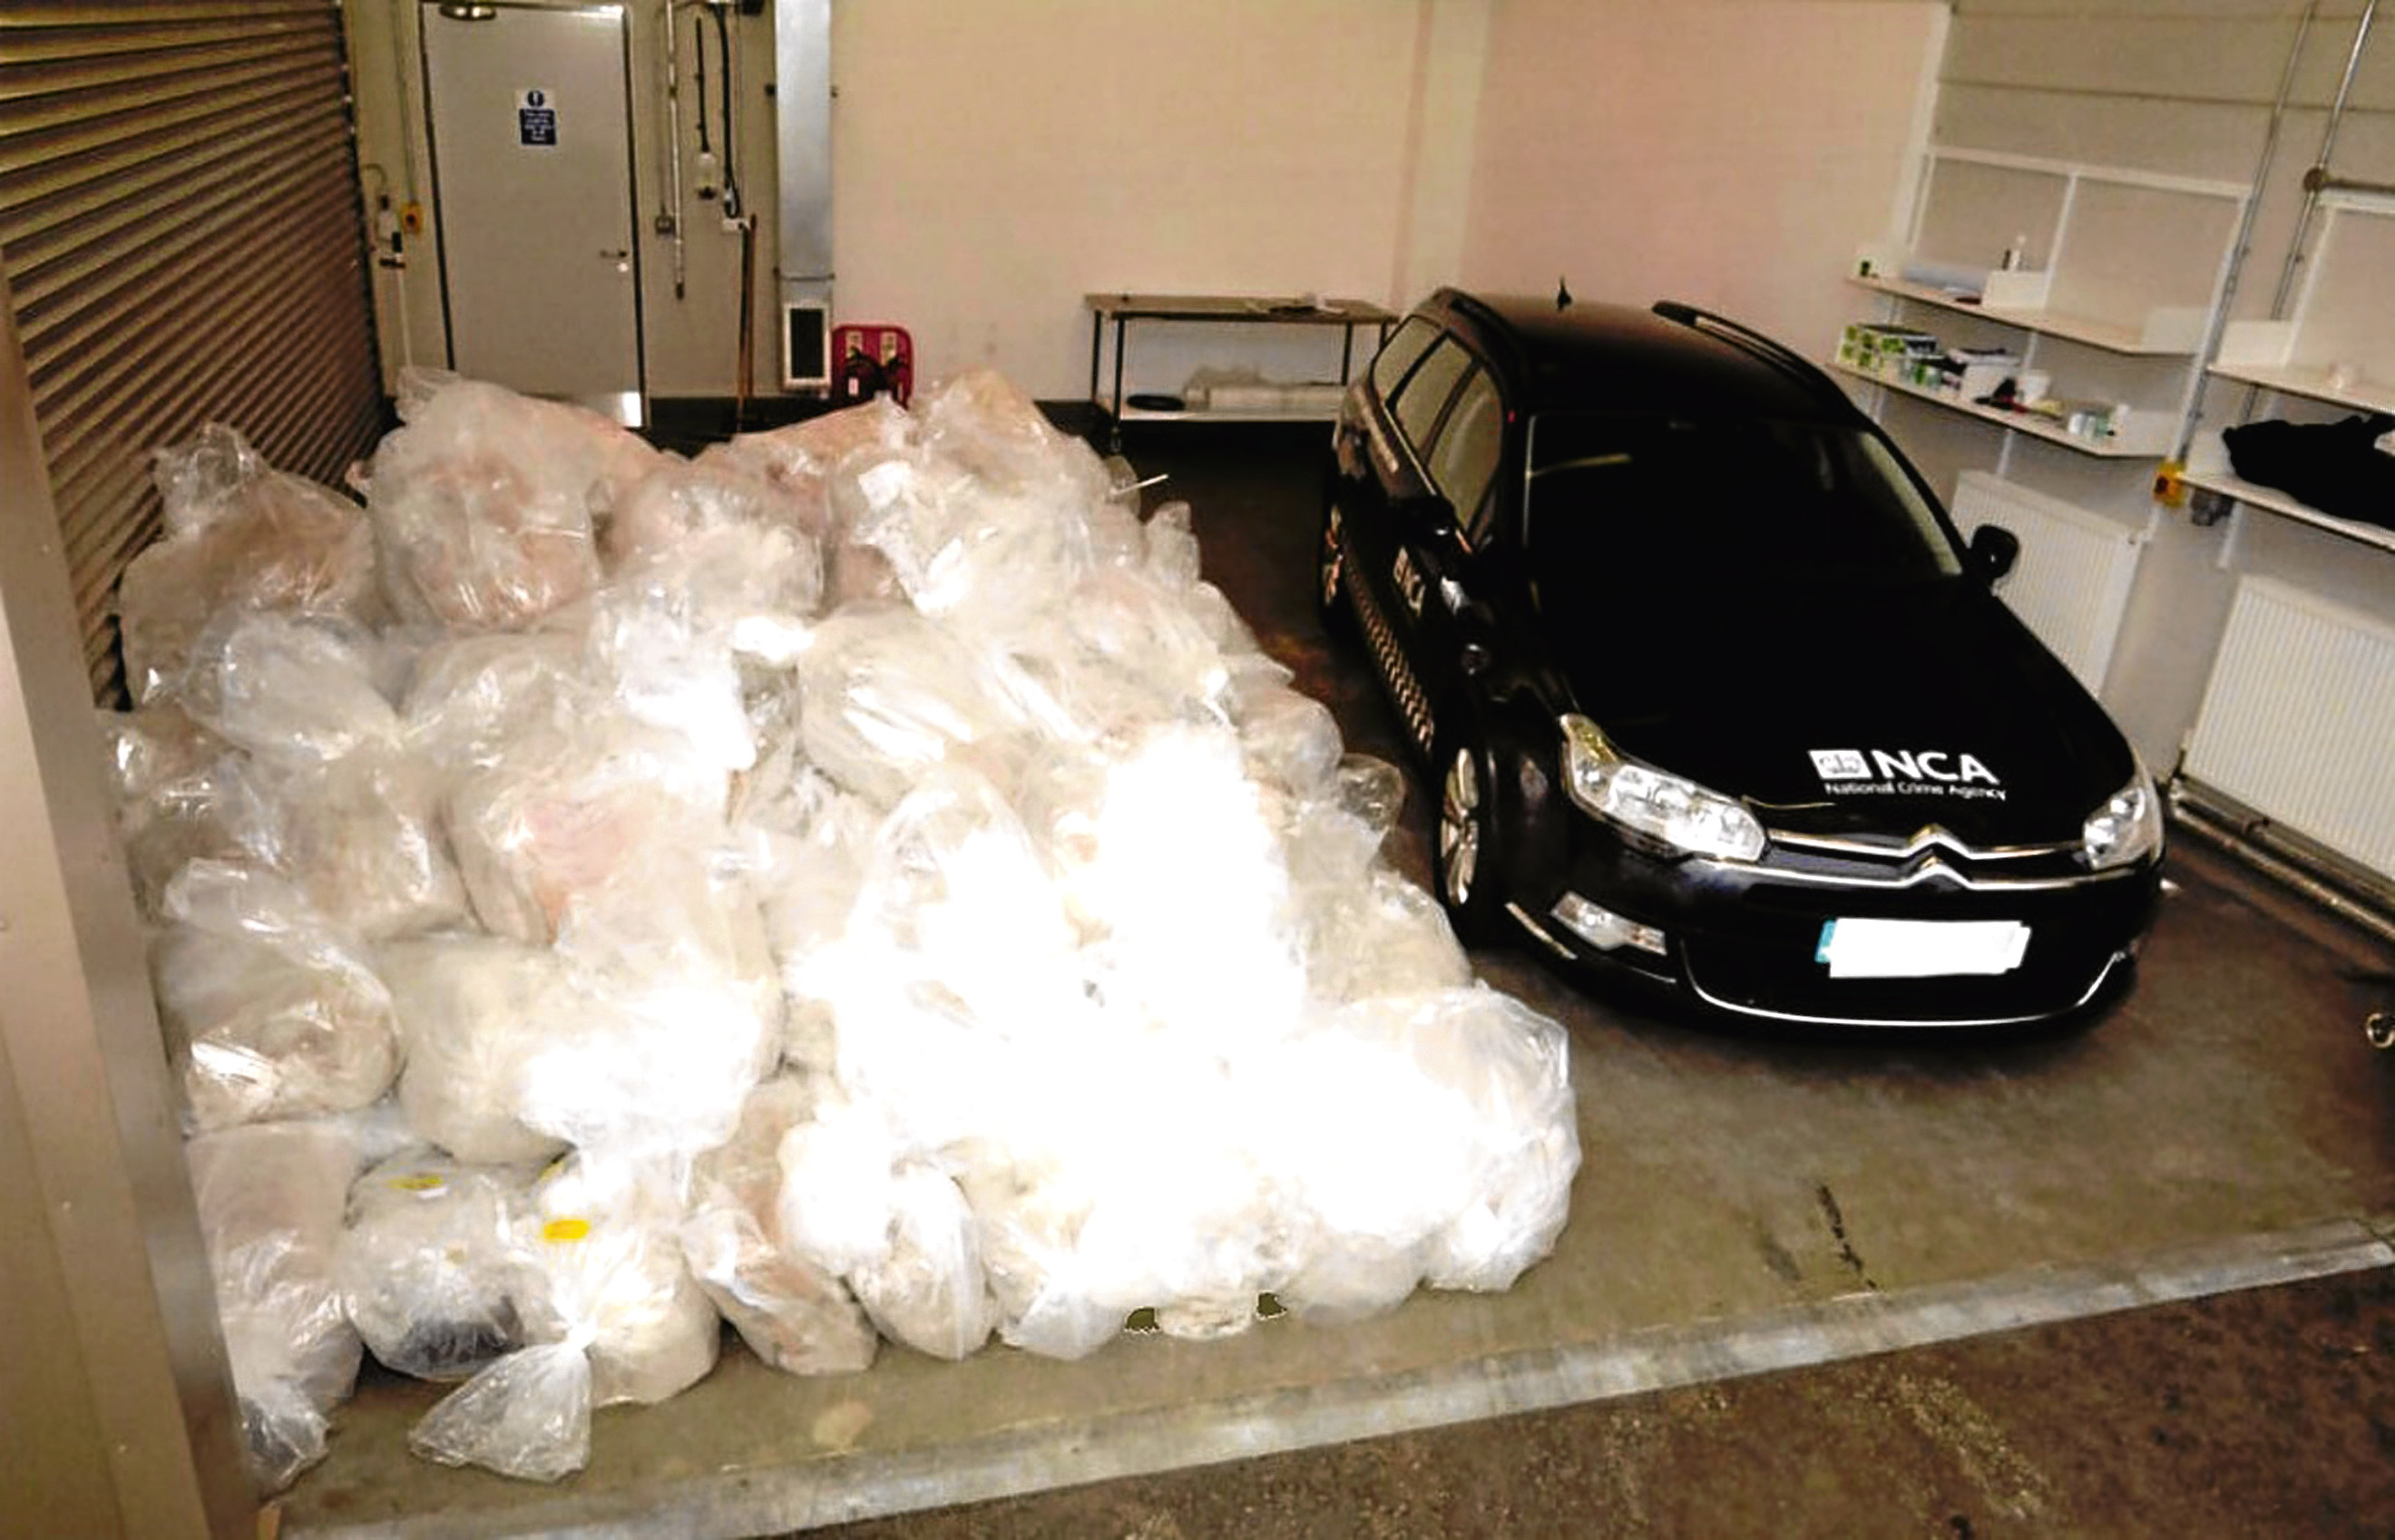 The huge quantity of drugs found on the boat 100 miles from Aberdeen.